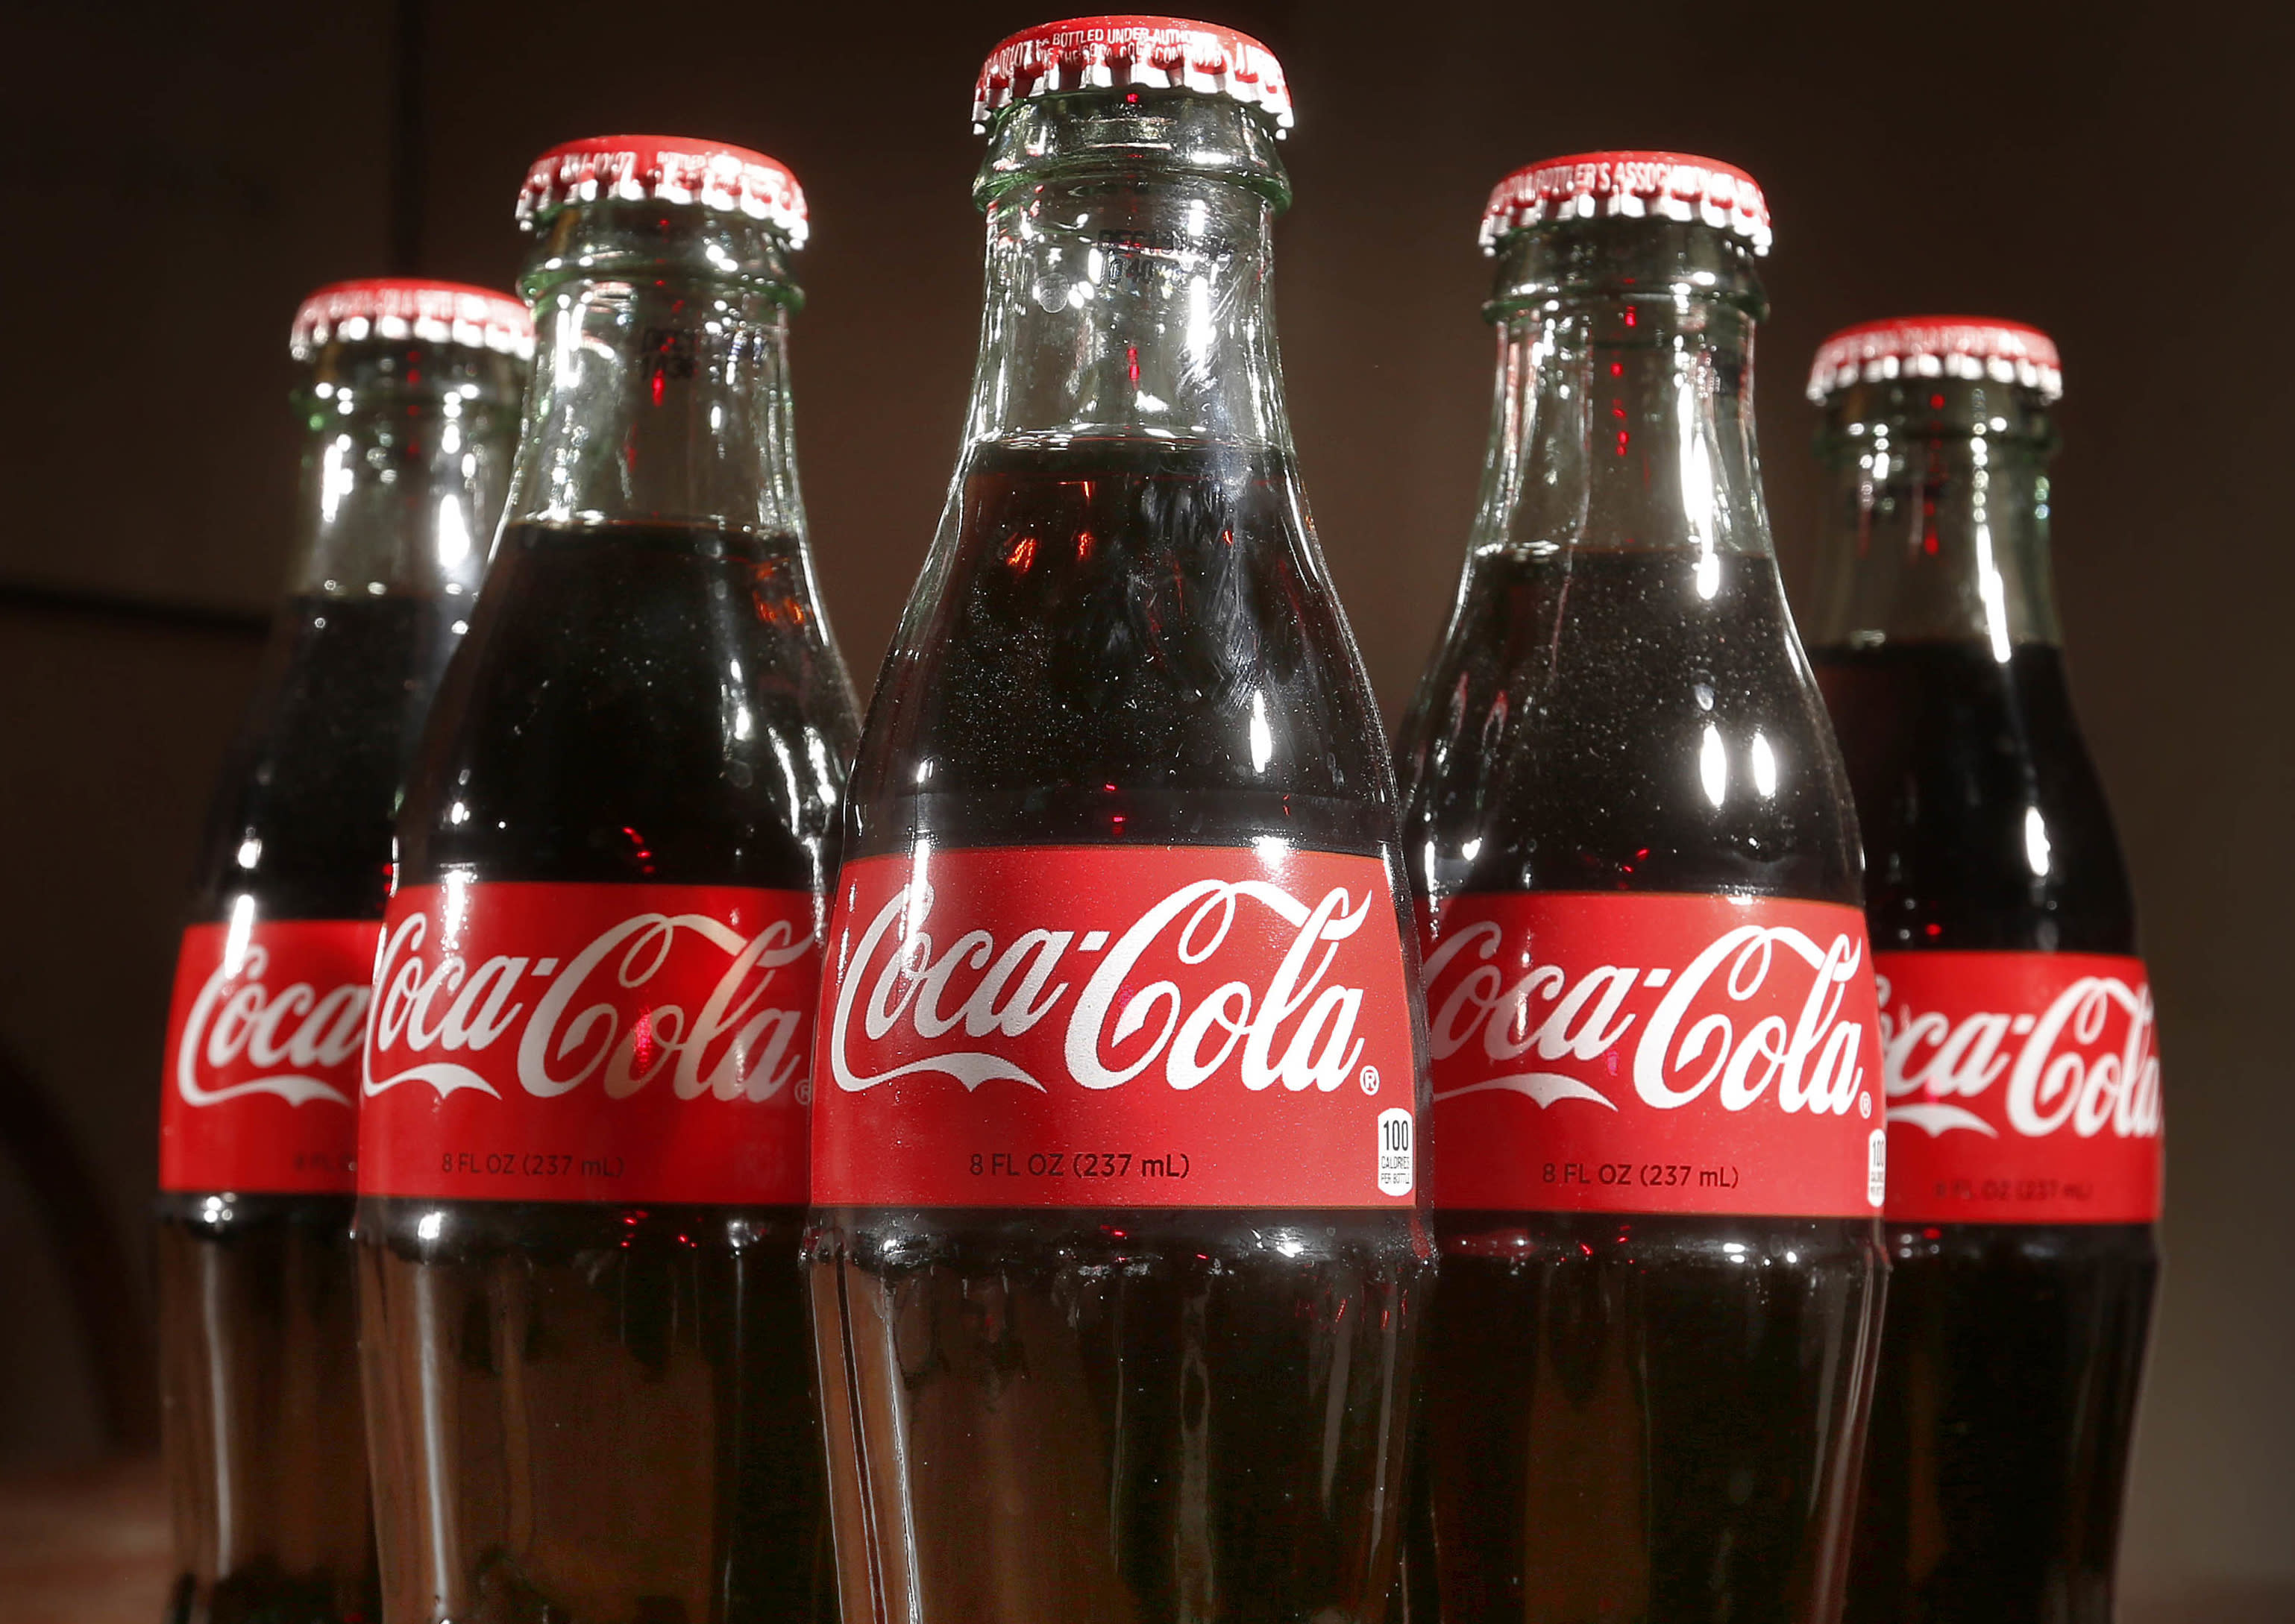 Coca-Cola CEO says business is improving amid COVID-19 pandemic